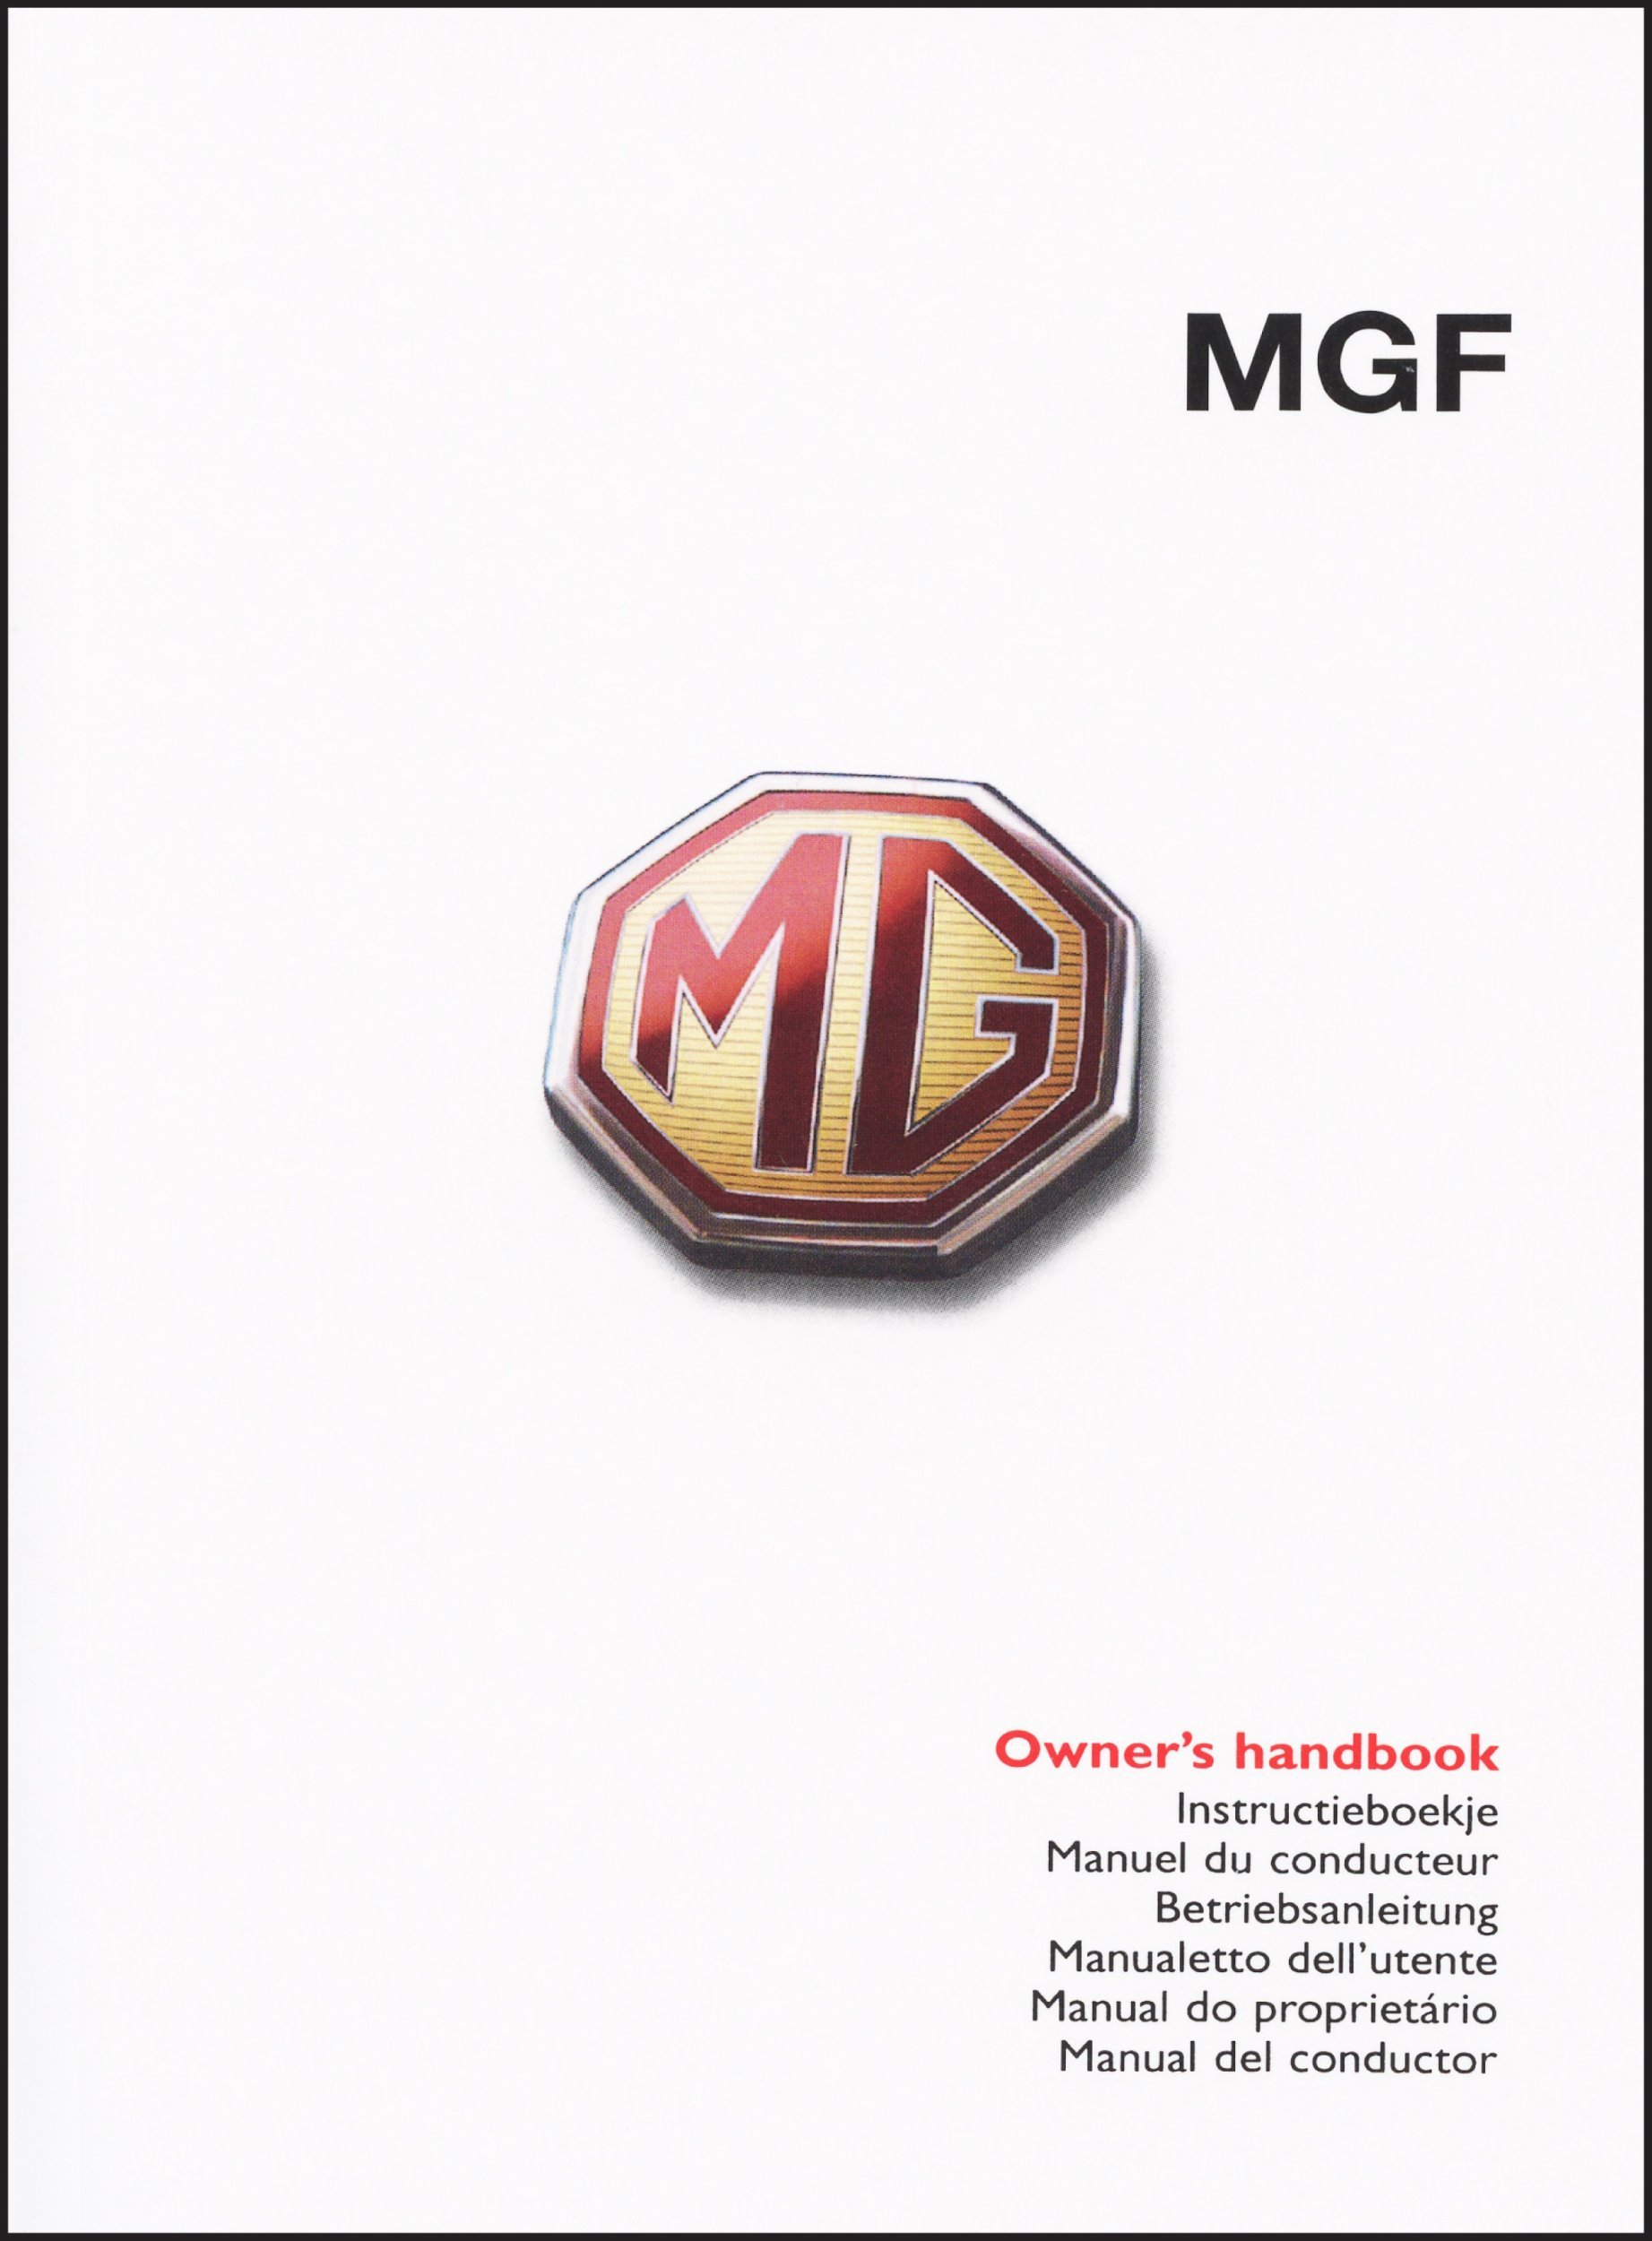 MGF Owners Handbook: Glovebox Owners Instruction Manual - Covers All MGF  Models Part No. RCL0332ENG - Illustrated Pages Showing Driving Controls and  .